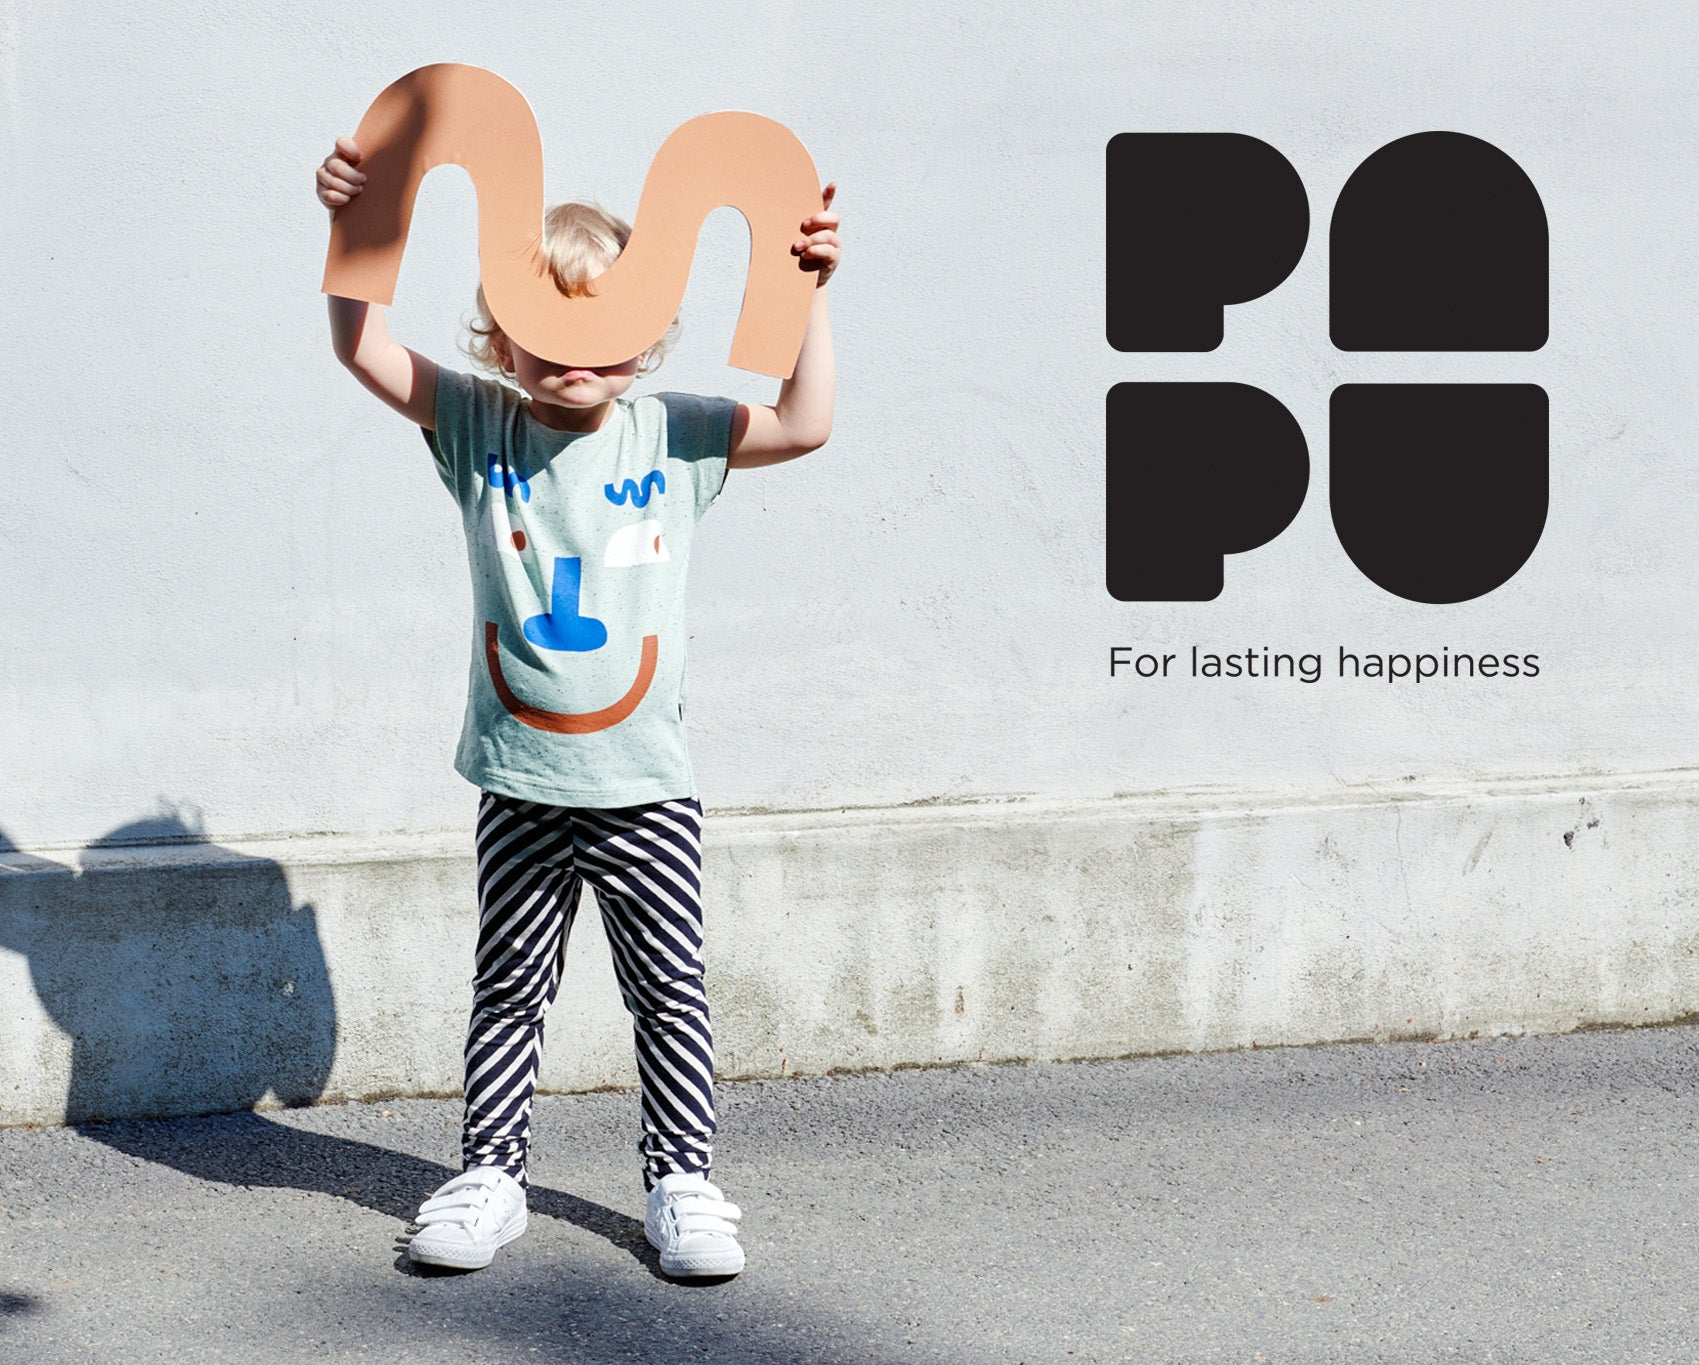 papu_design_for_lasting_happiness_kids_brand